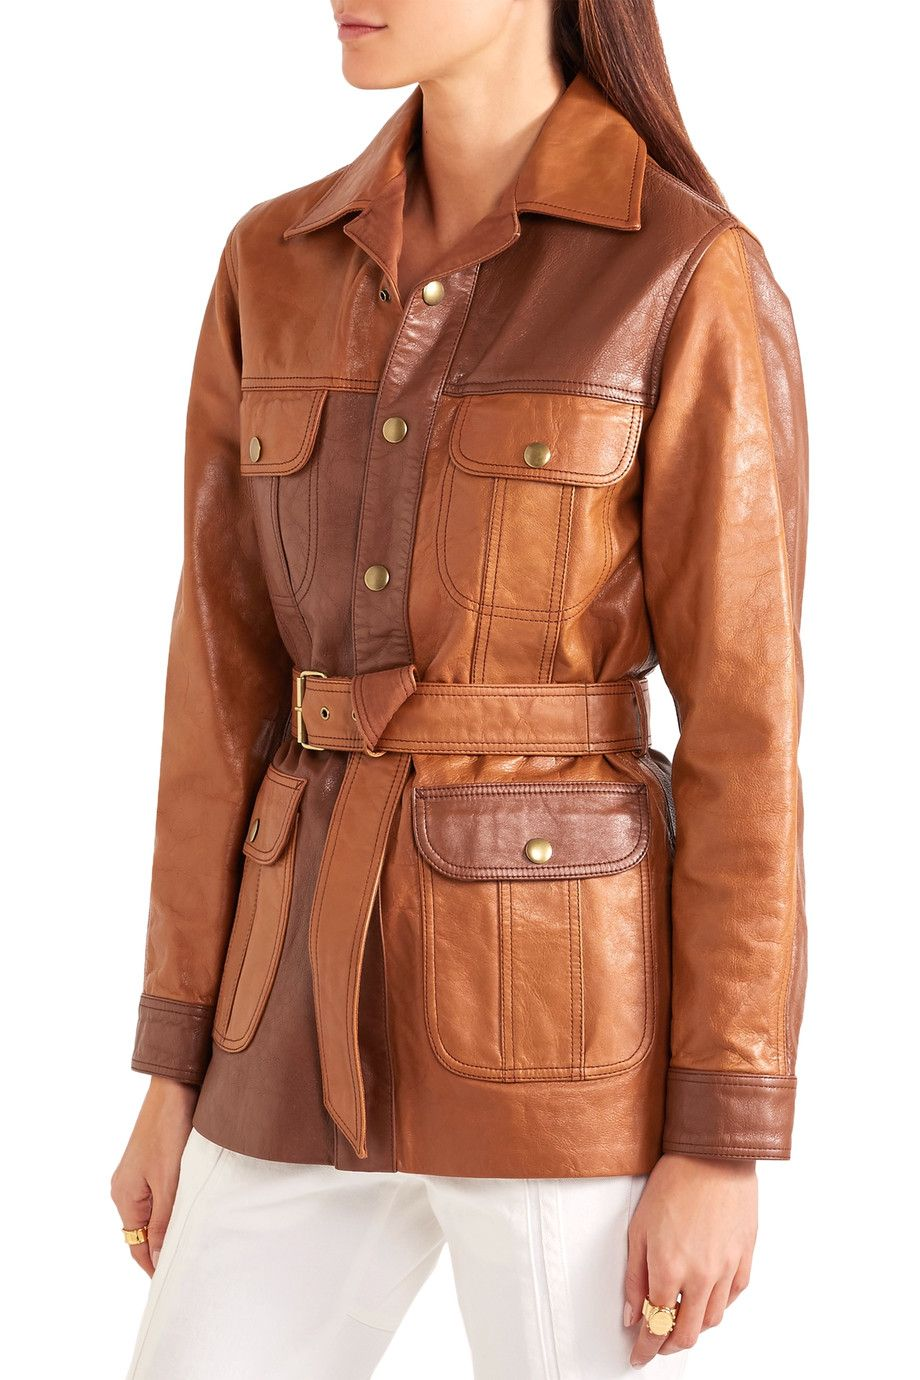 Shop onsale Chloé Belted leather jacket. Browse other